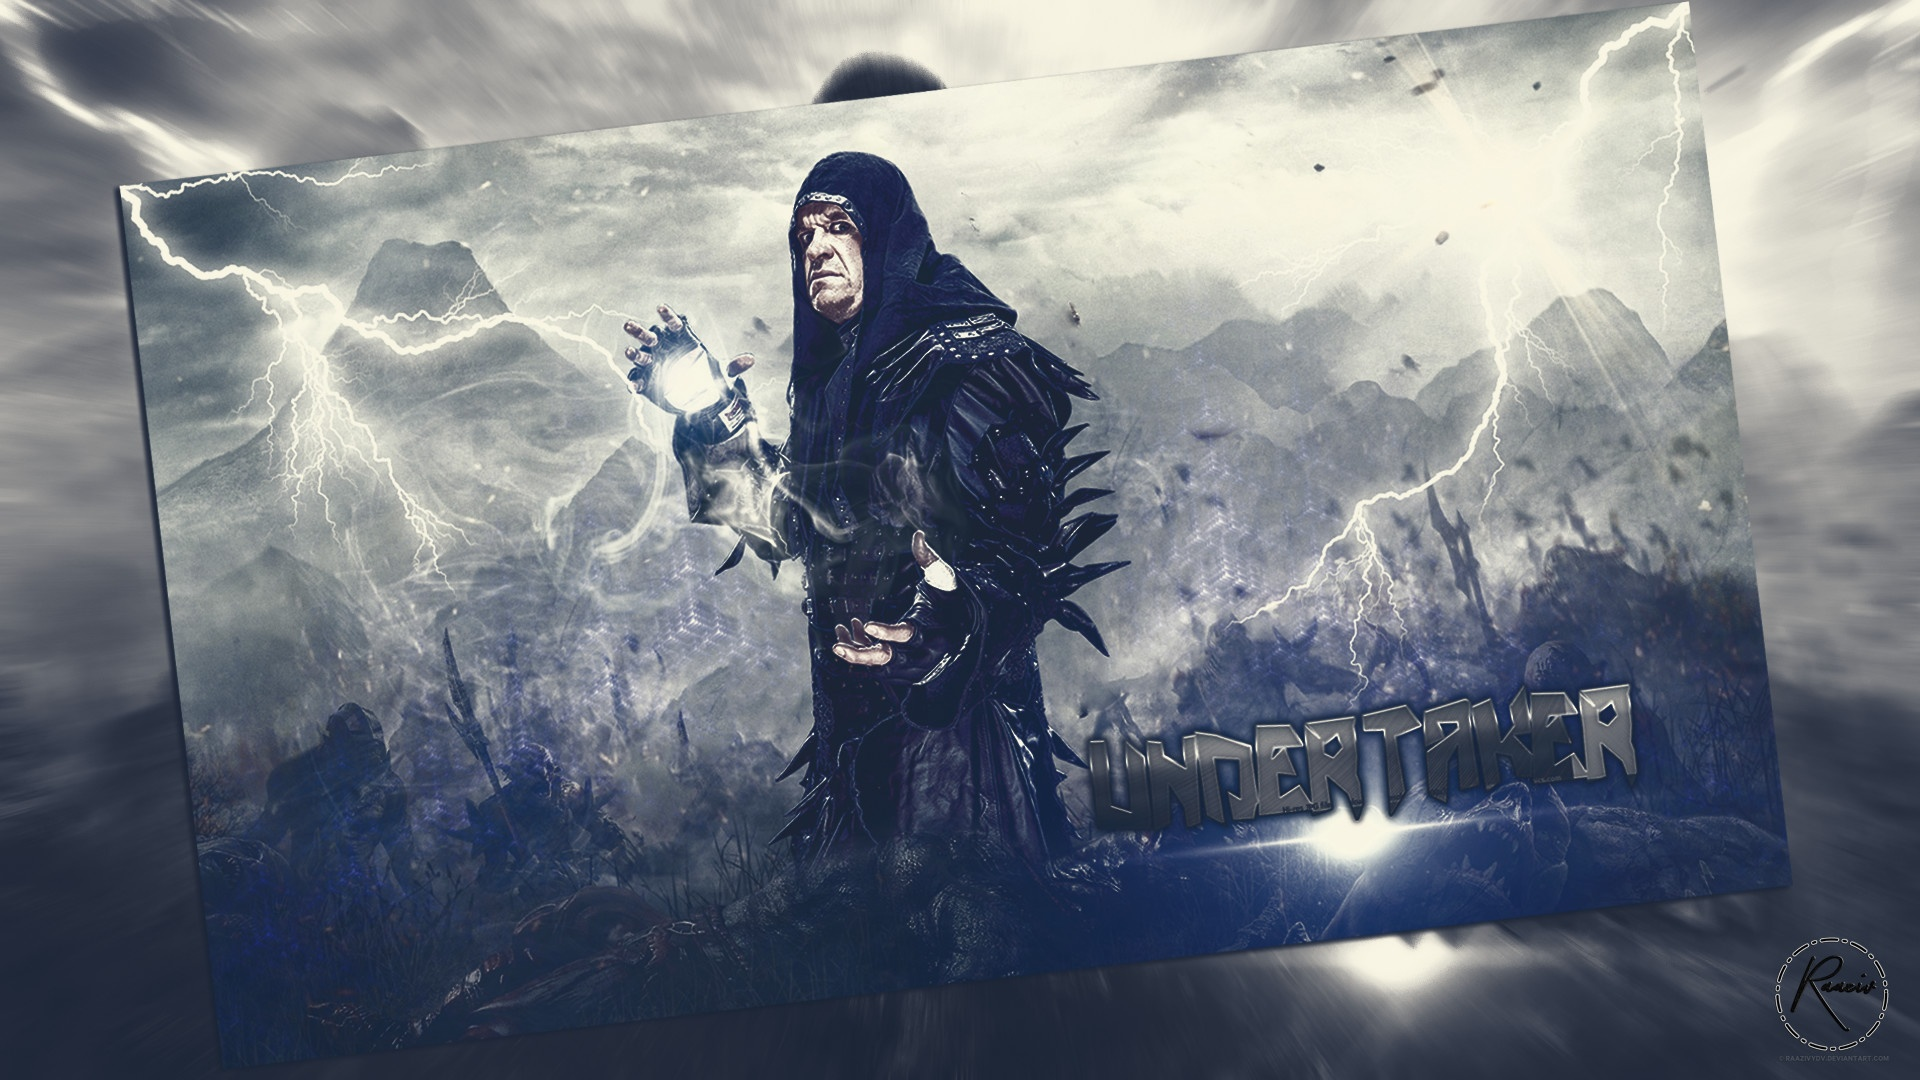 Undertaker free background